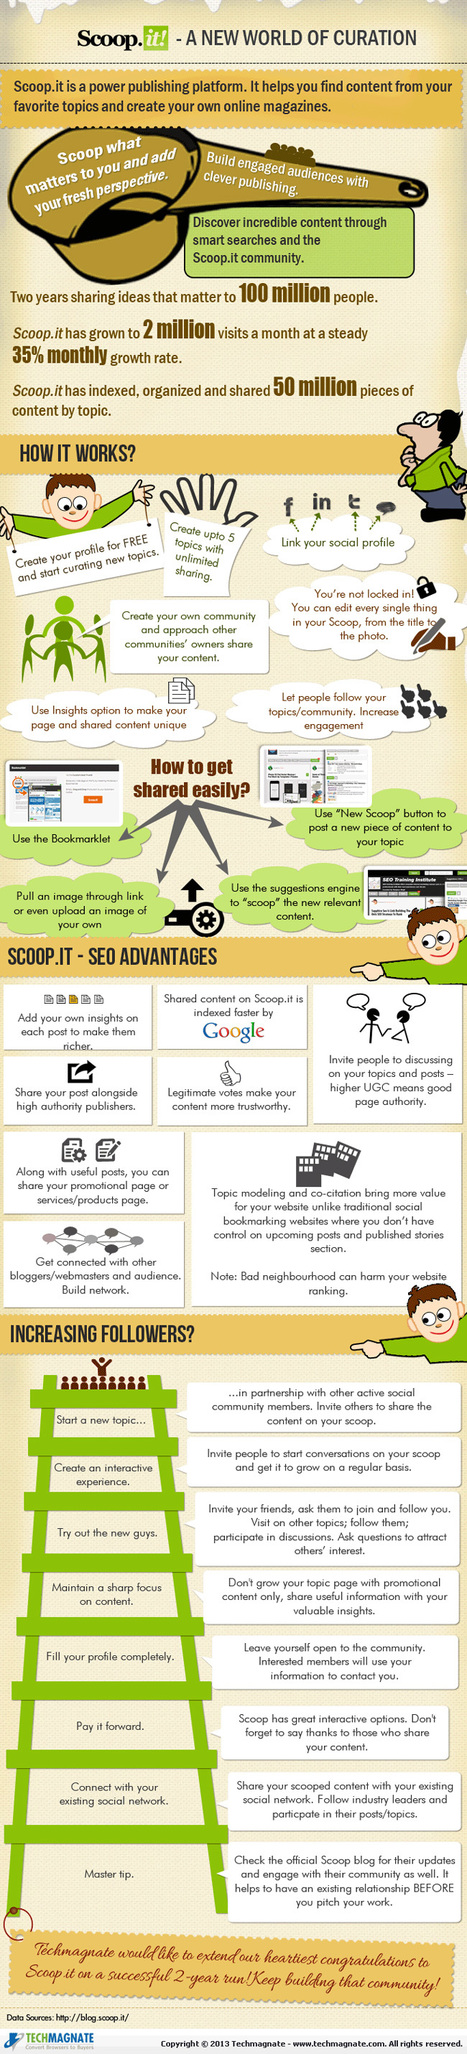 Scoop.It for SEO – A New World of Curation [Infographic] | Curation and Libraries and Learning | Scoop.it